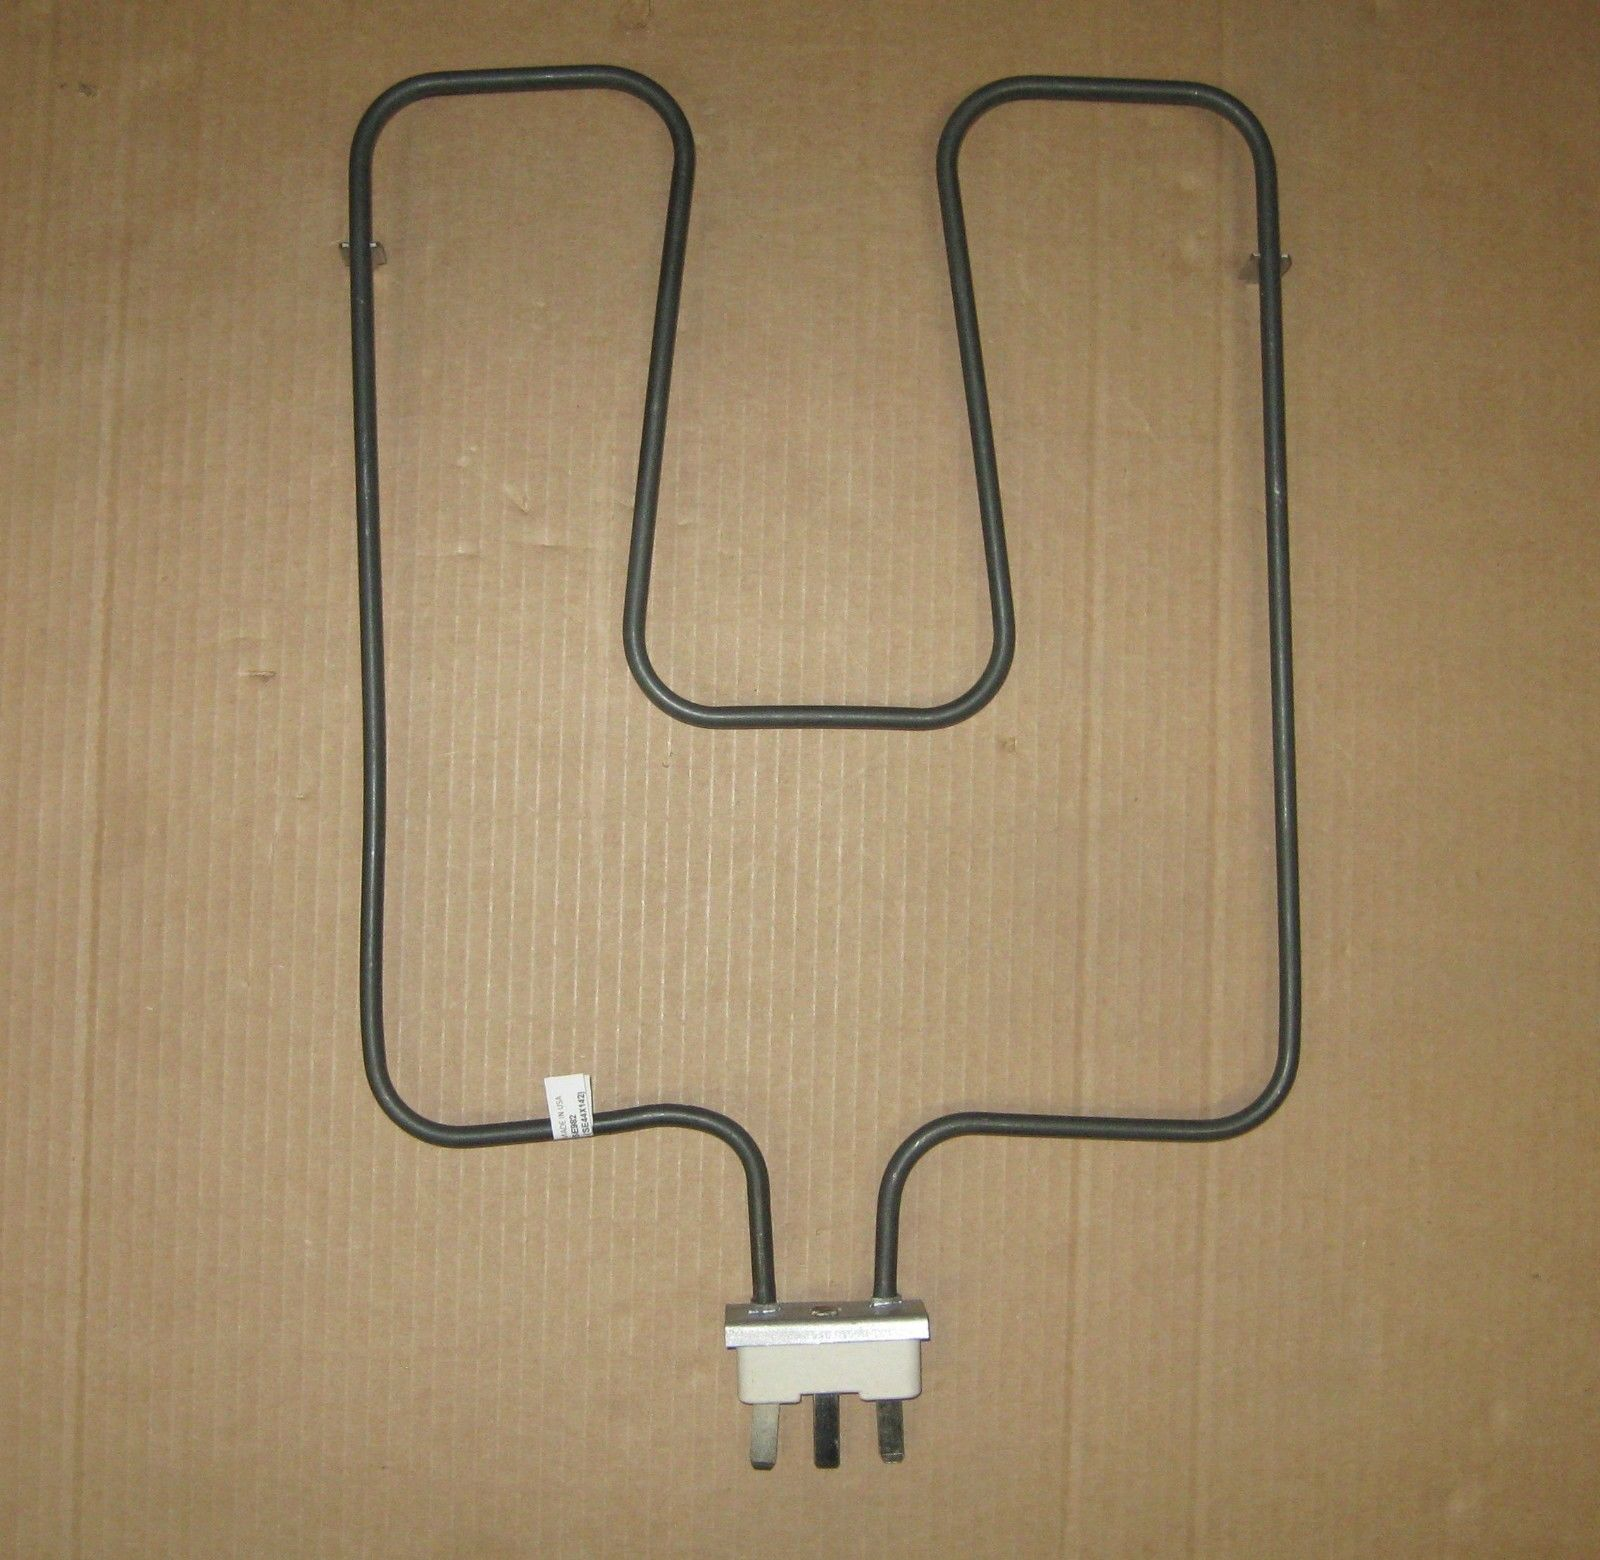 Ch44x142 Electric Range Oven Bake Heating Element Unit For